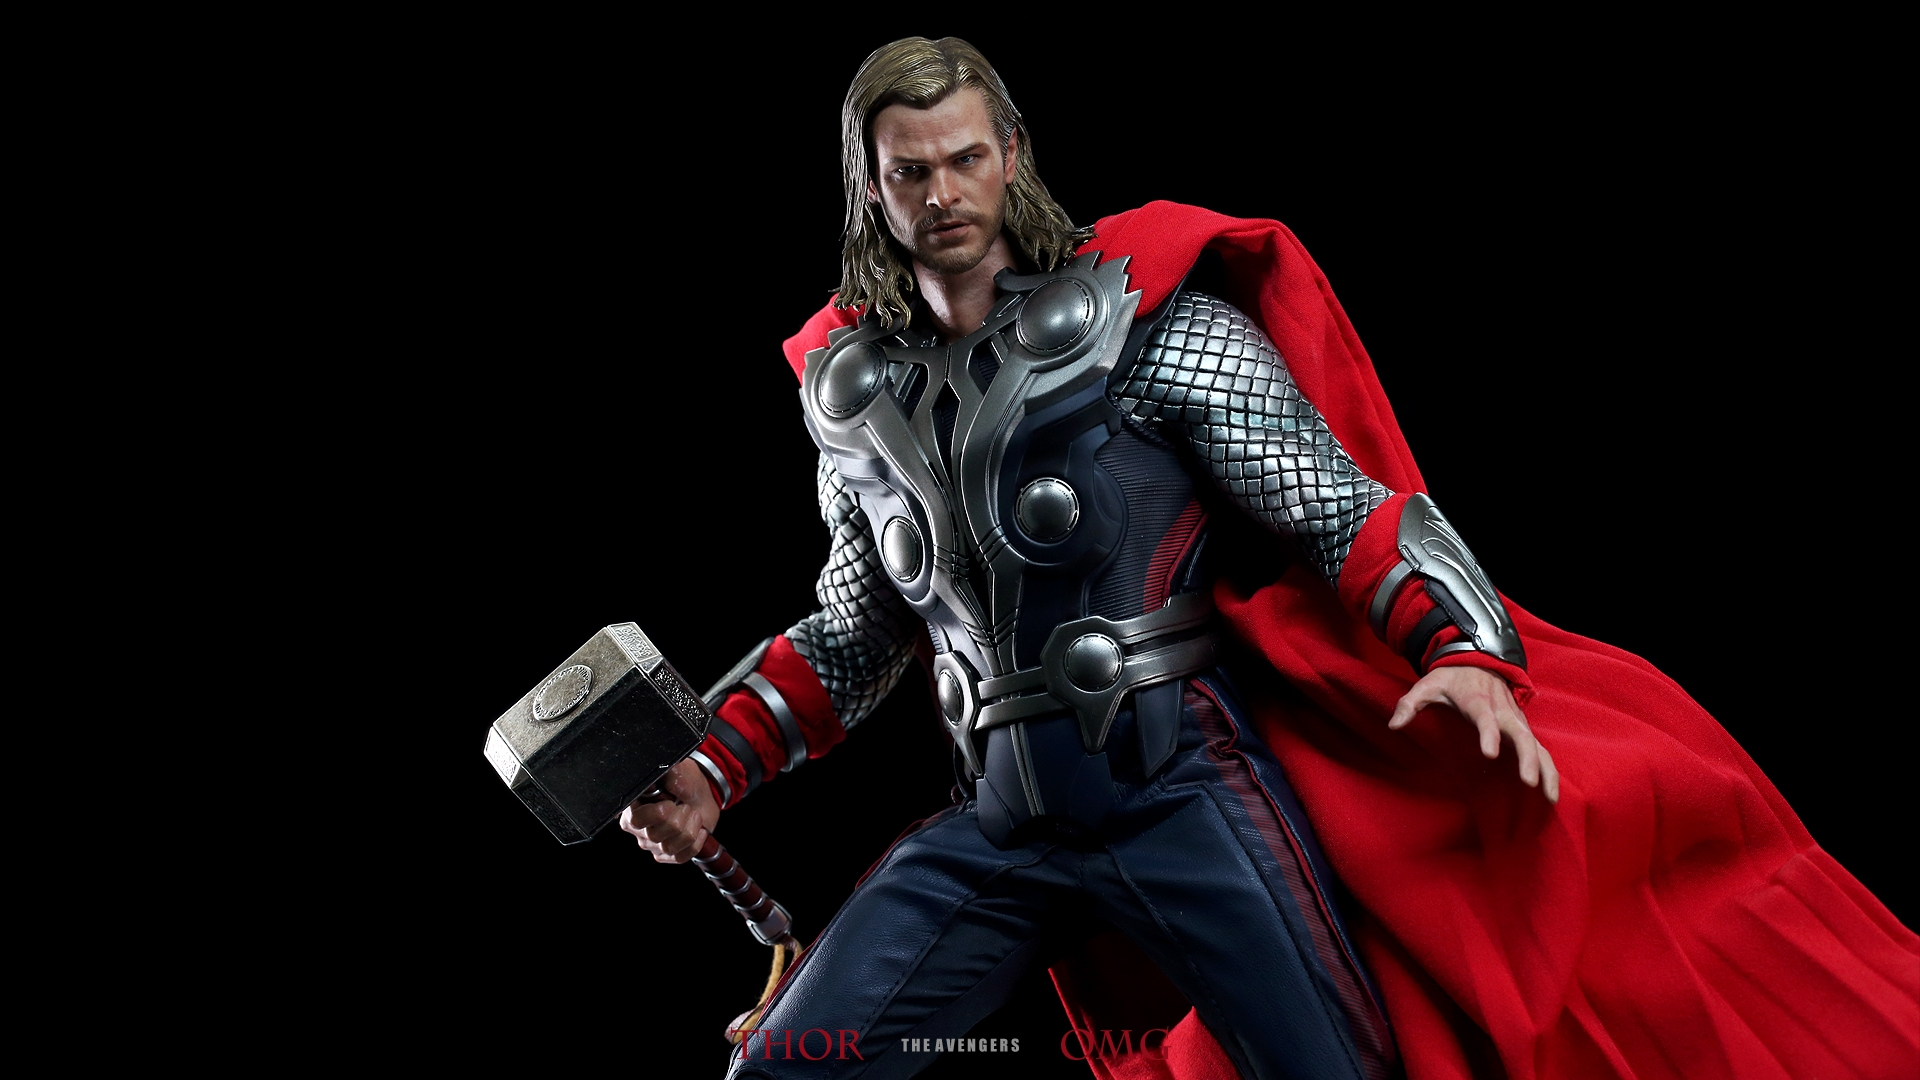 Thor Movie Desktop Wallpapers Free Desktop Wallpaper 1920x1080